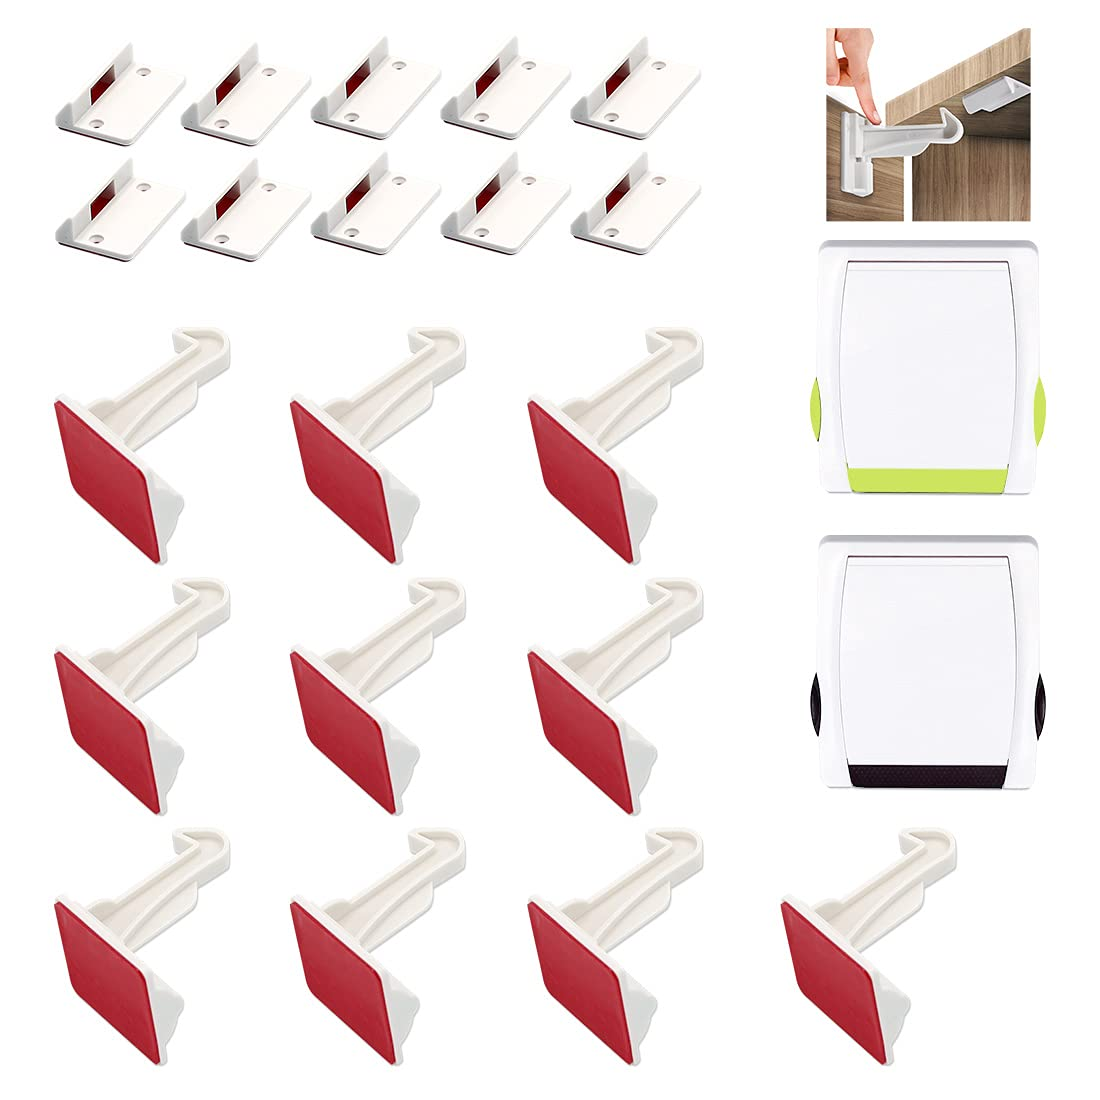 Upgraded Invisible Cabinet Locks Child Safety Latches, 10 Pack Child Proofing Cabinet & Drawers Locks for Babies - No Drilling and Tools Required, Strong Adhesive - Kitchen Bedroom Cabinets Drawers